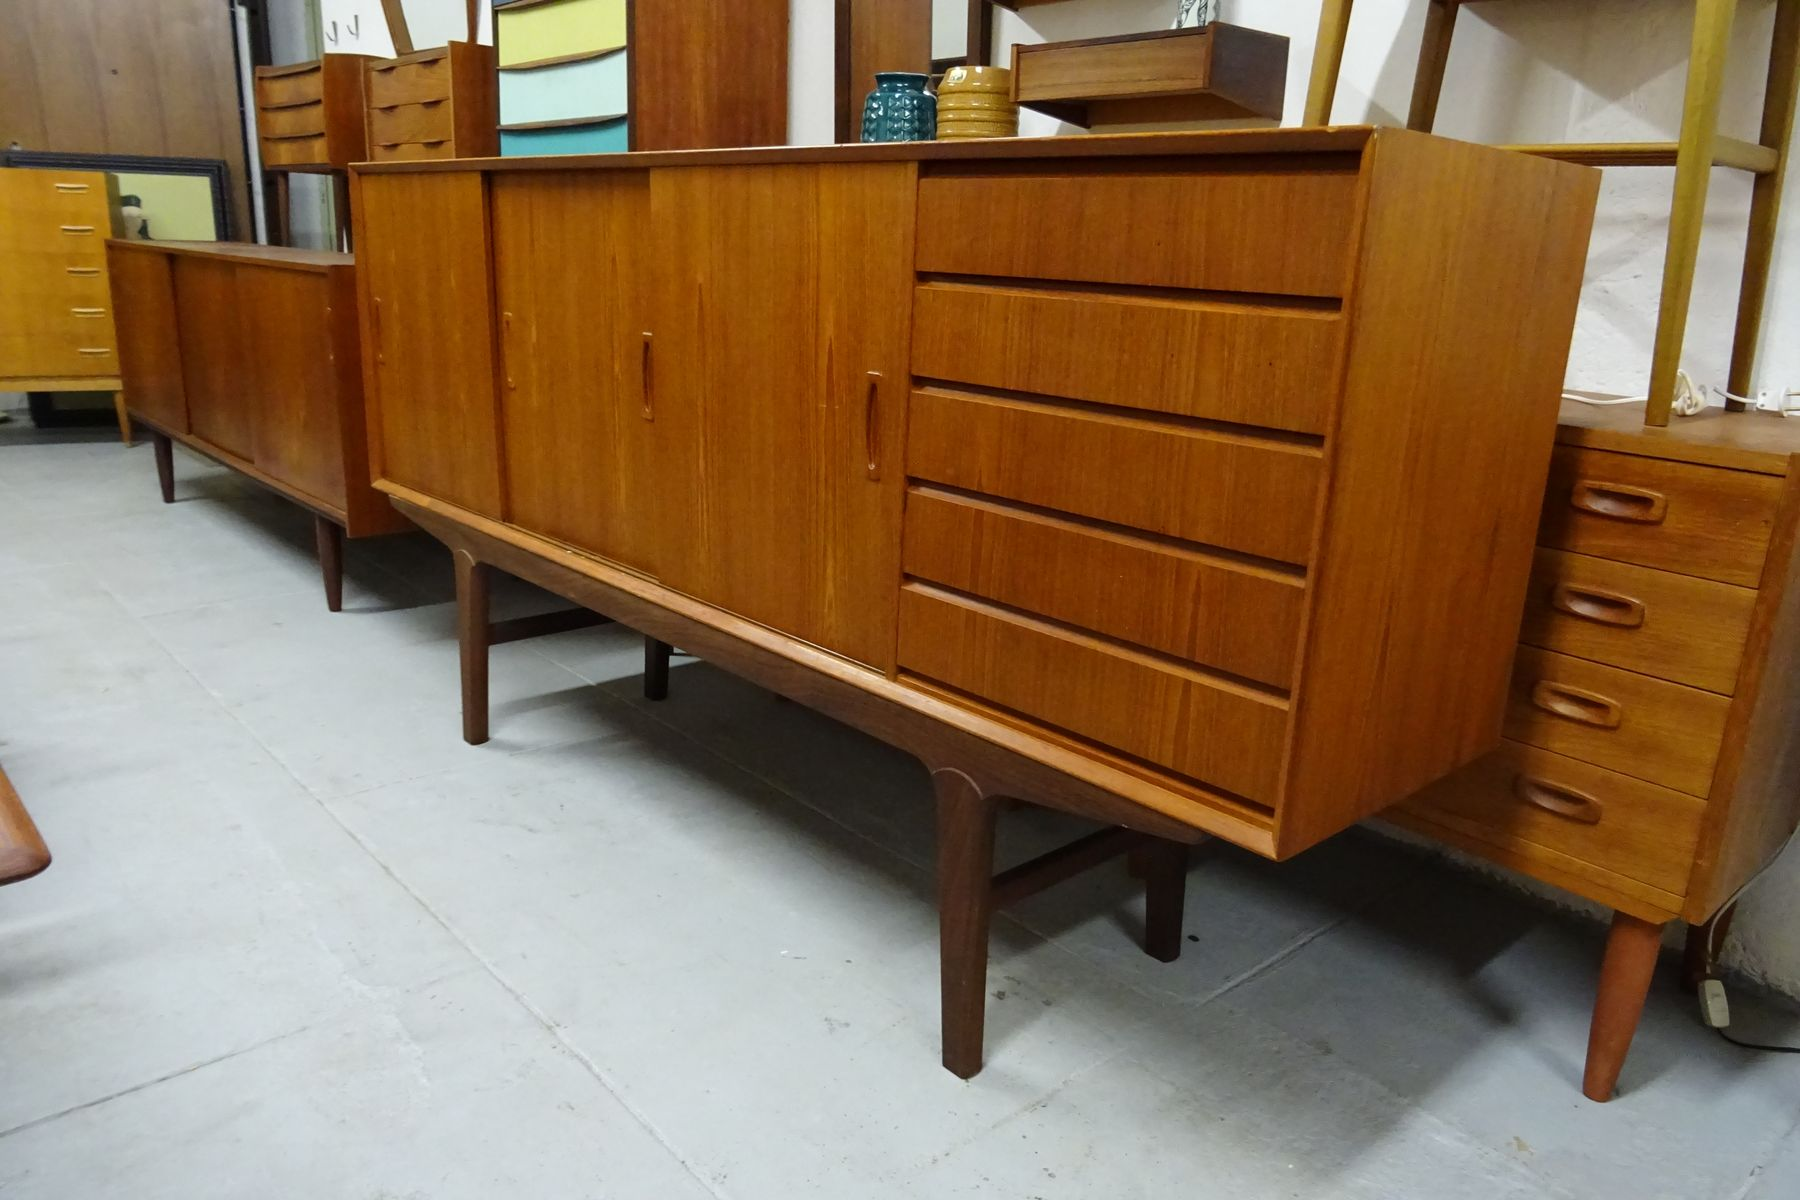 vintage sideboard mit schubladen aus teak bei pamono kaufen. Black Bedroom Furniture Sets. Home Design Ideas